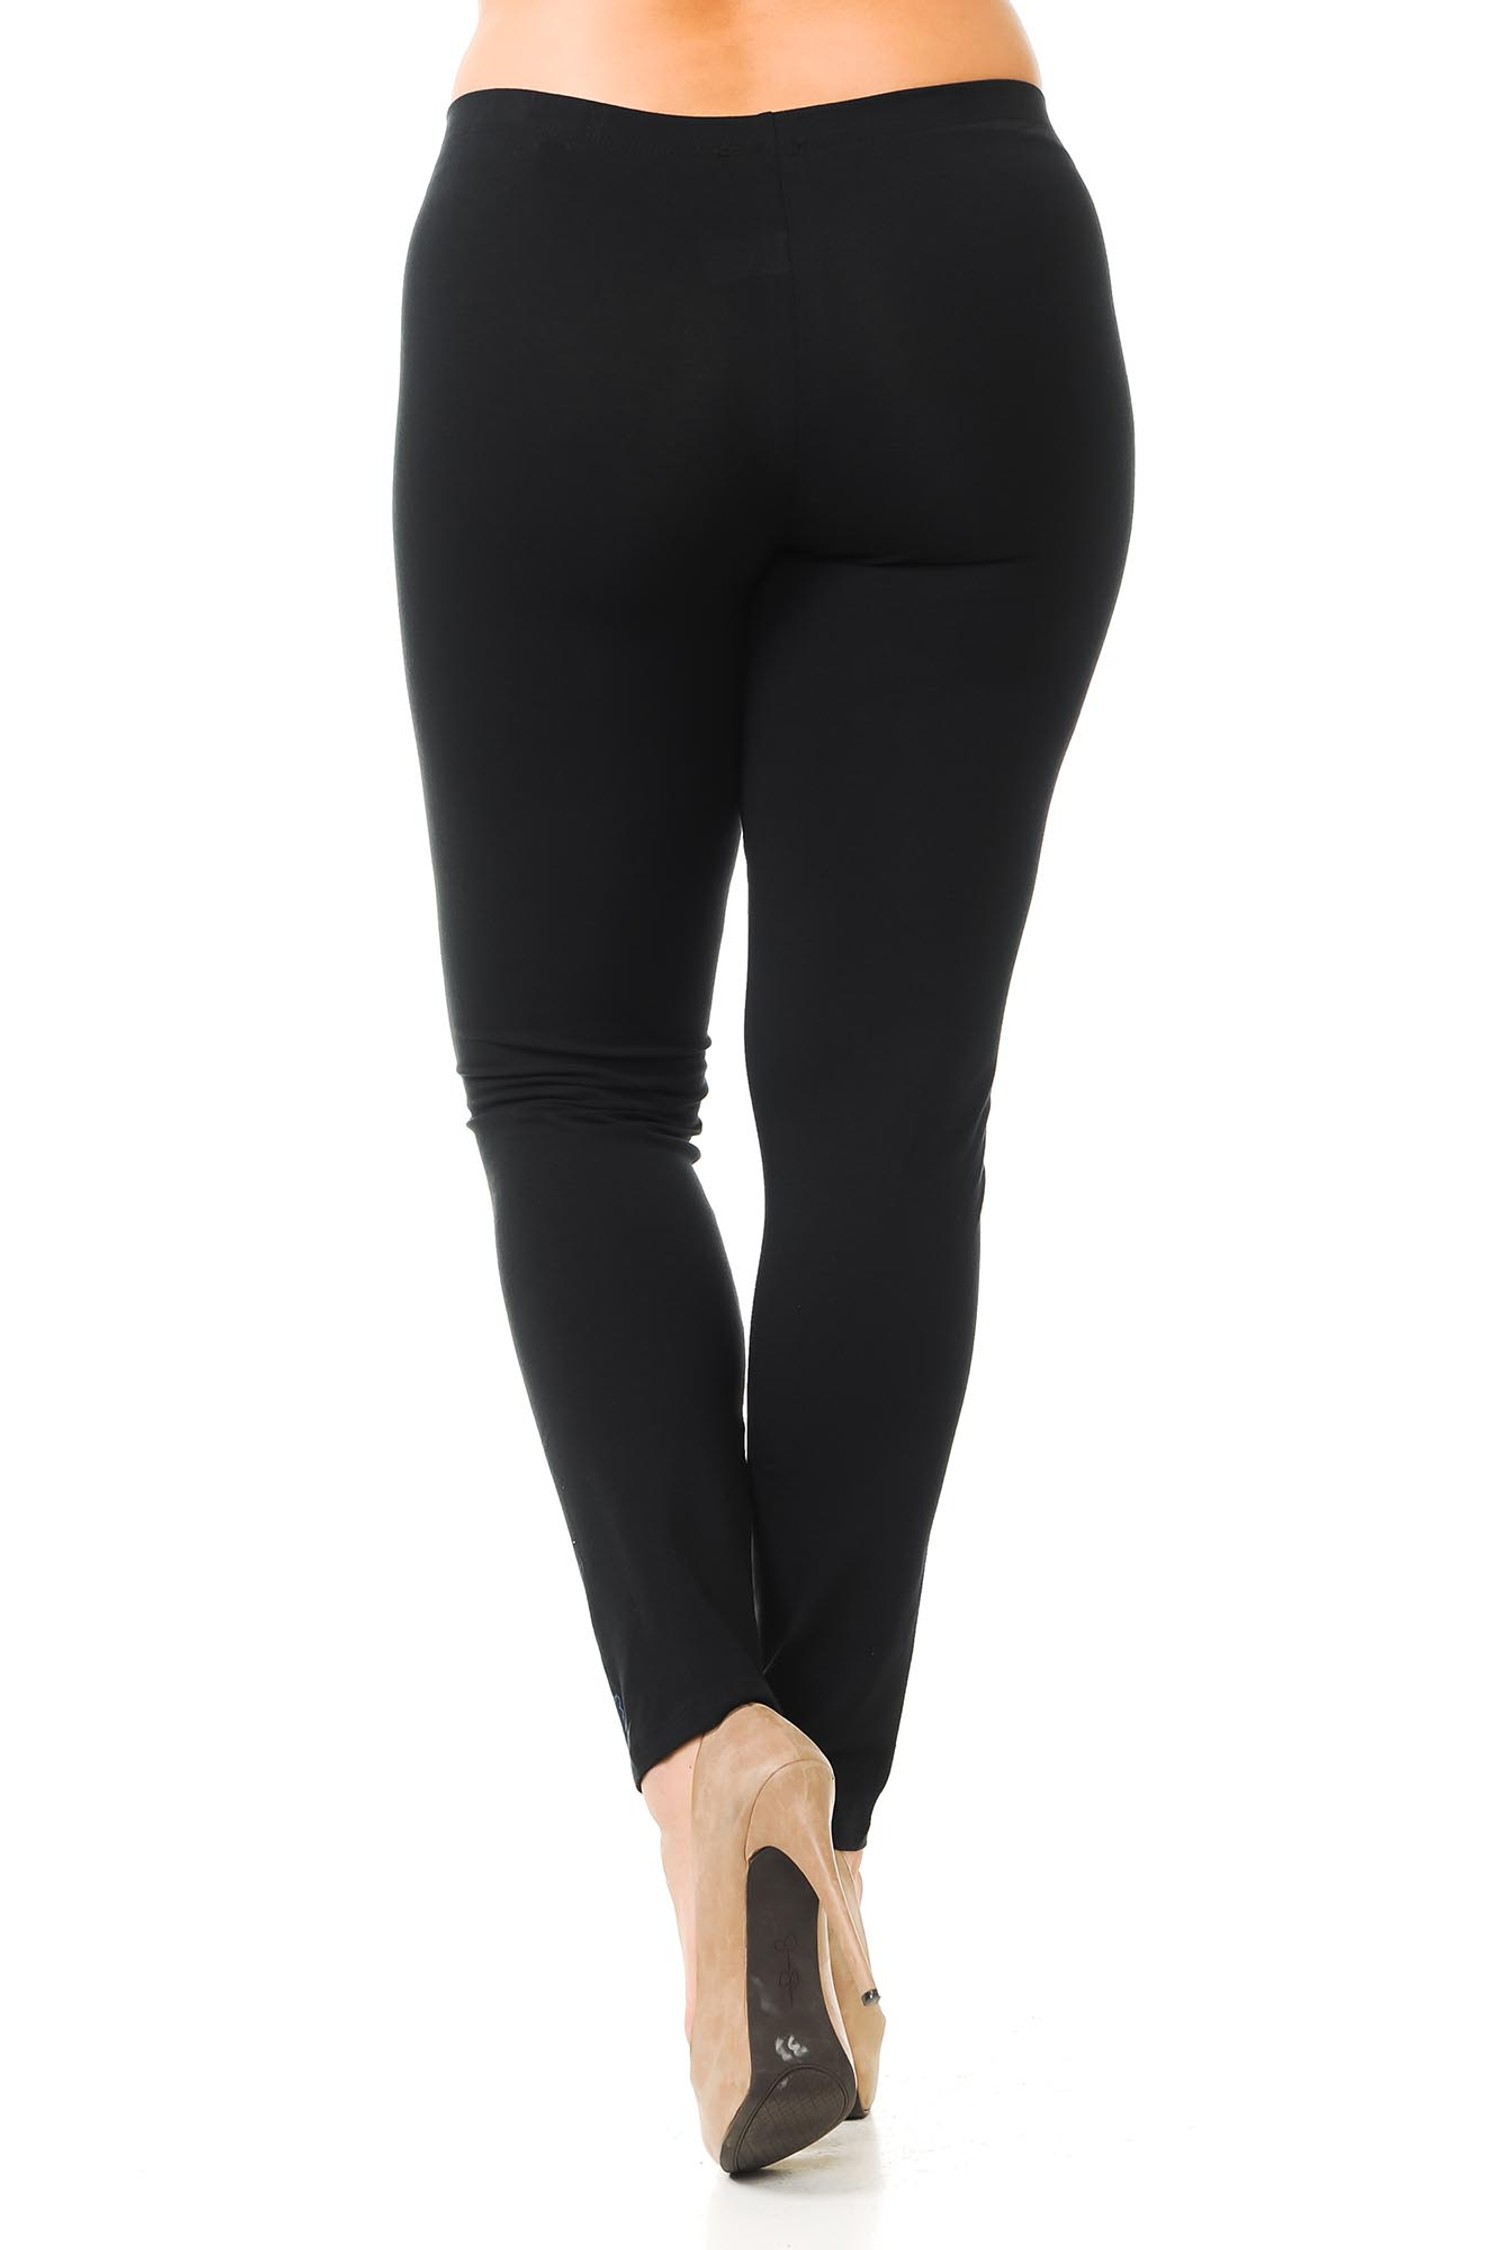 Rear view of black full length plus size made in the USA cotton leggings with a flattering body forming fit.